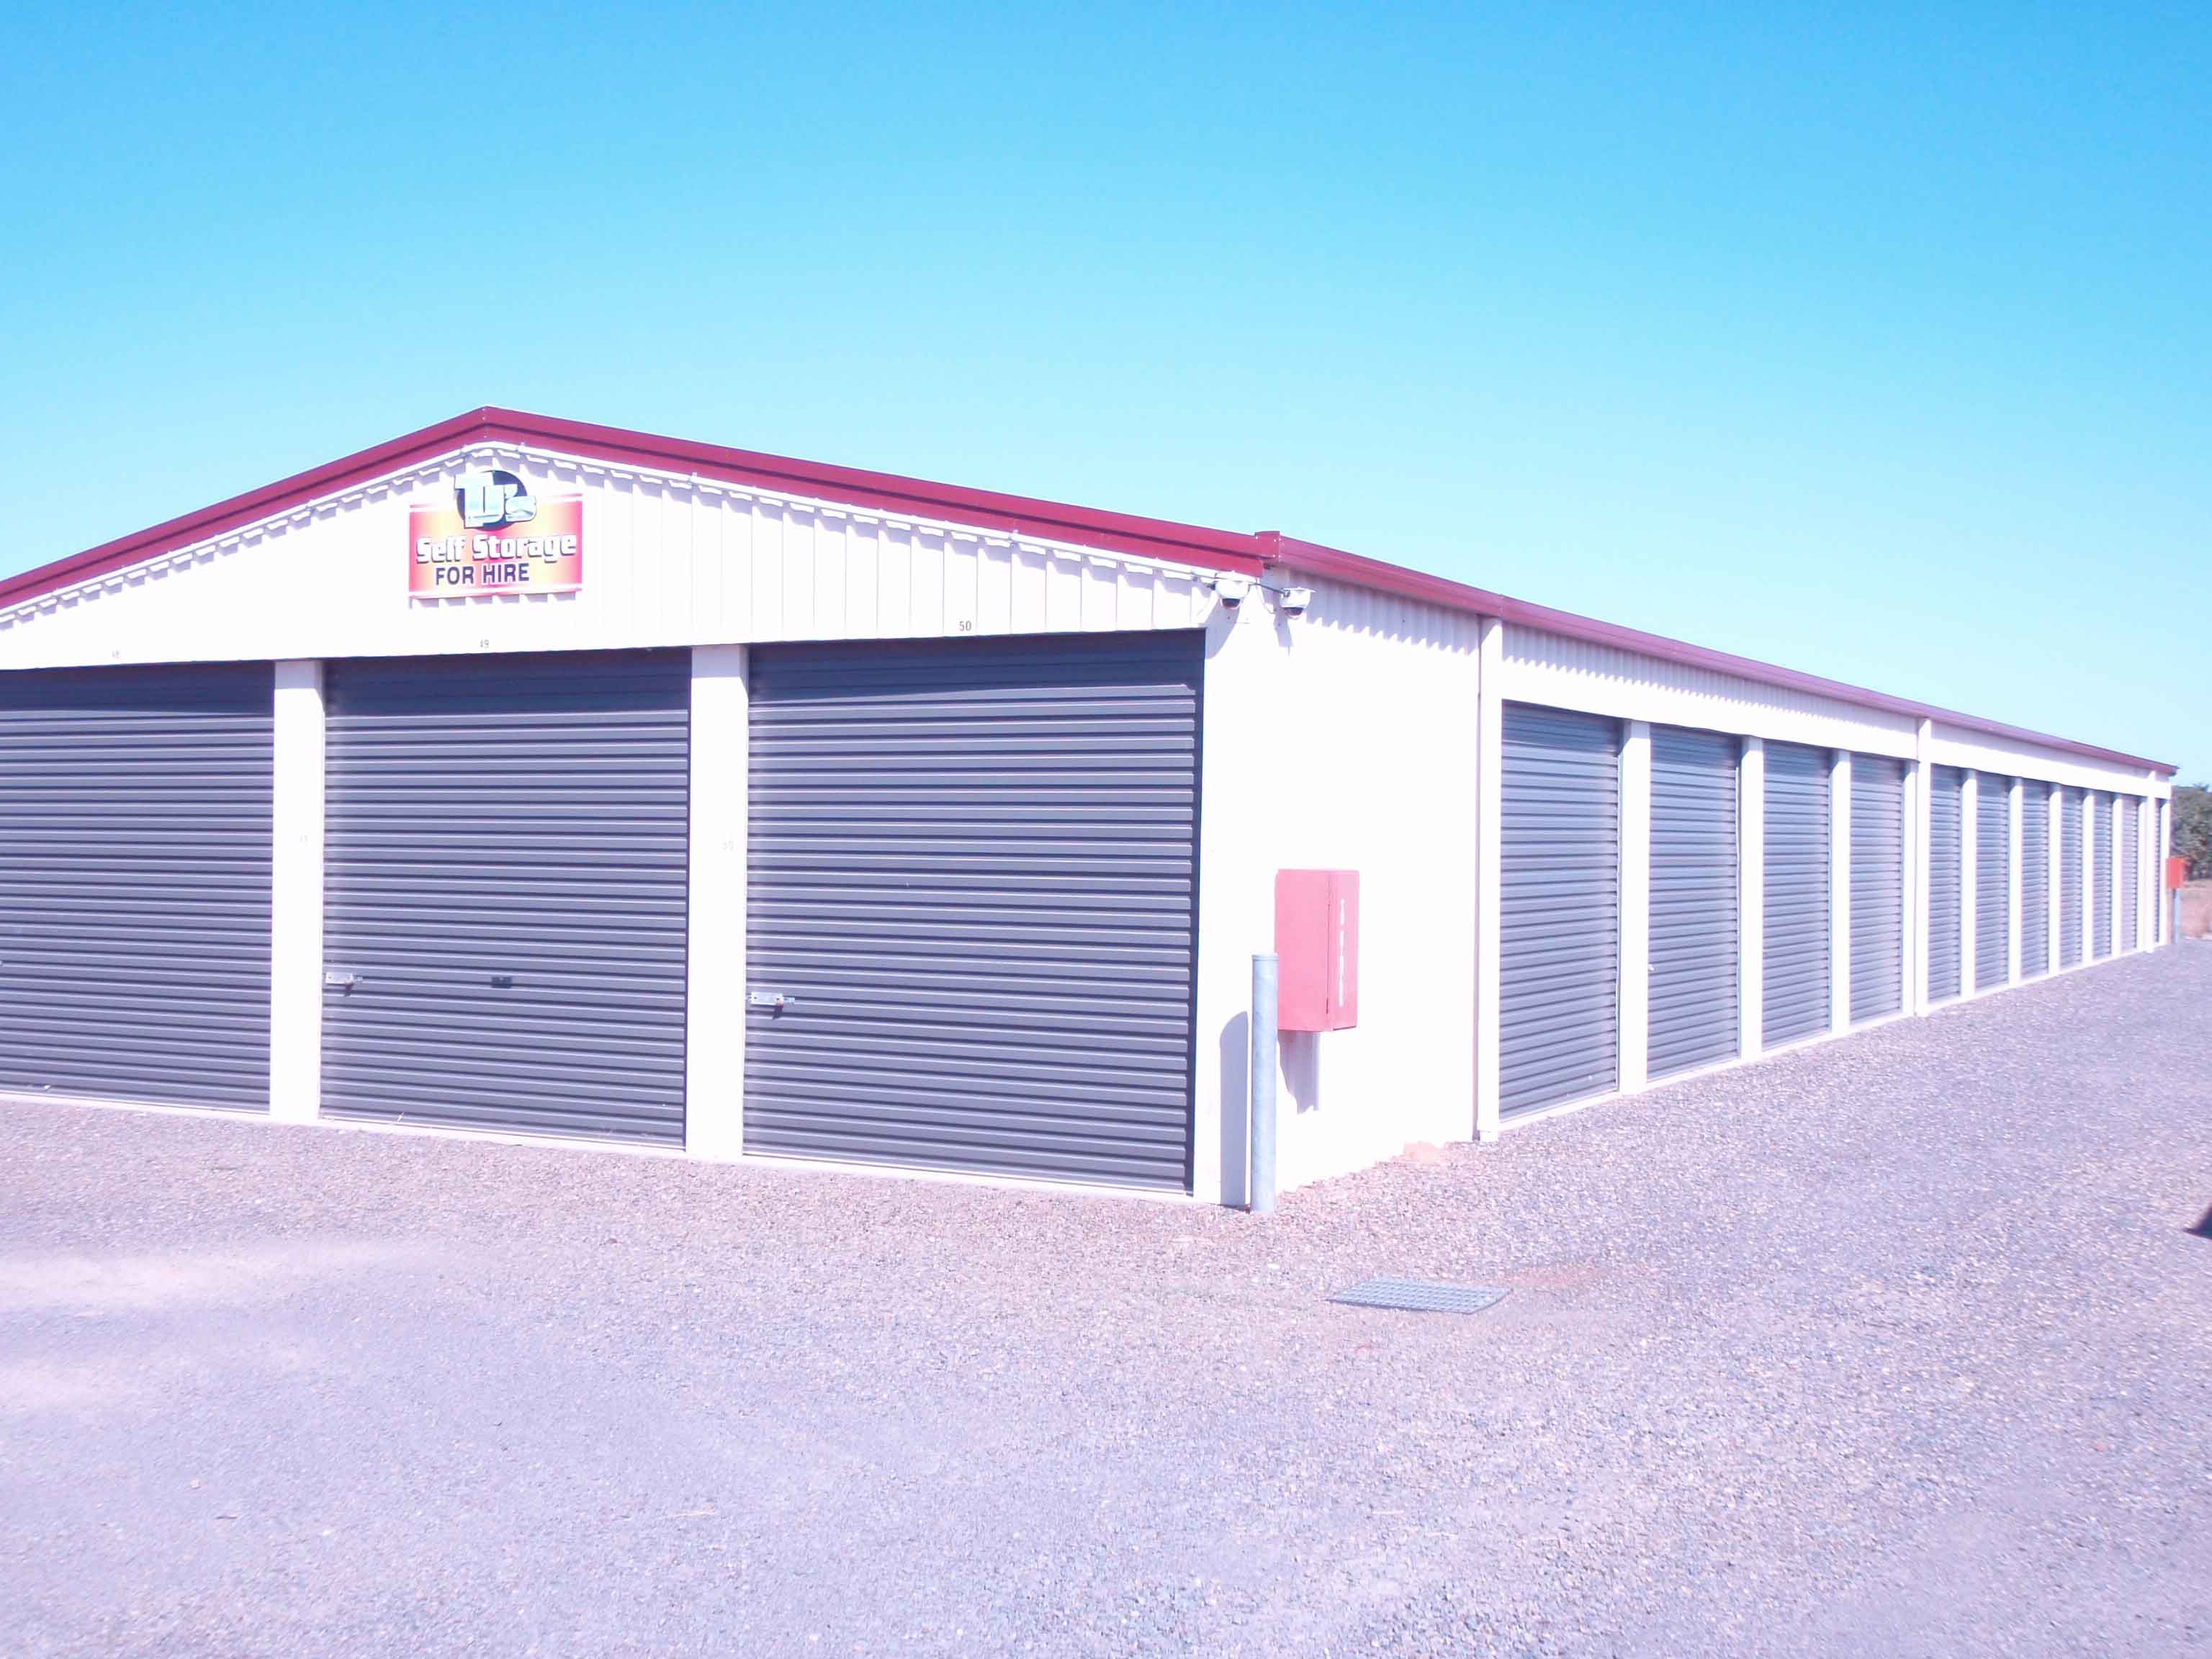 24hr Surveillance, Electronic Gate Access, Safe/Secure Storage, 2 x 3 metres 4.5 x 4.5 metres 6 x 3 metres 9 x 3 metres, open caravan storage, under cover caravan space 7 x 3 metres